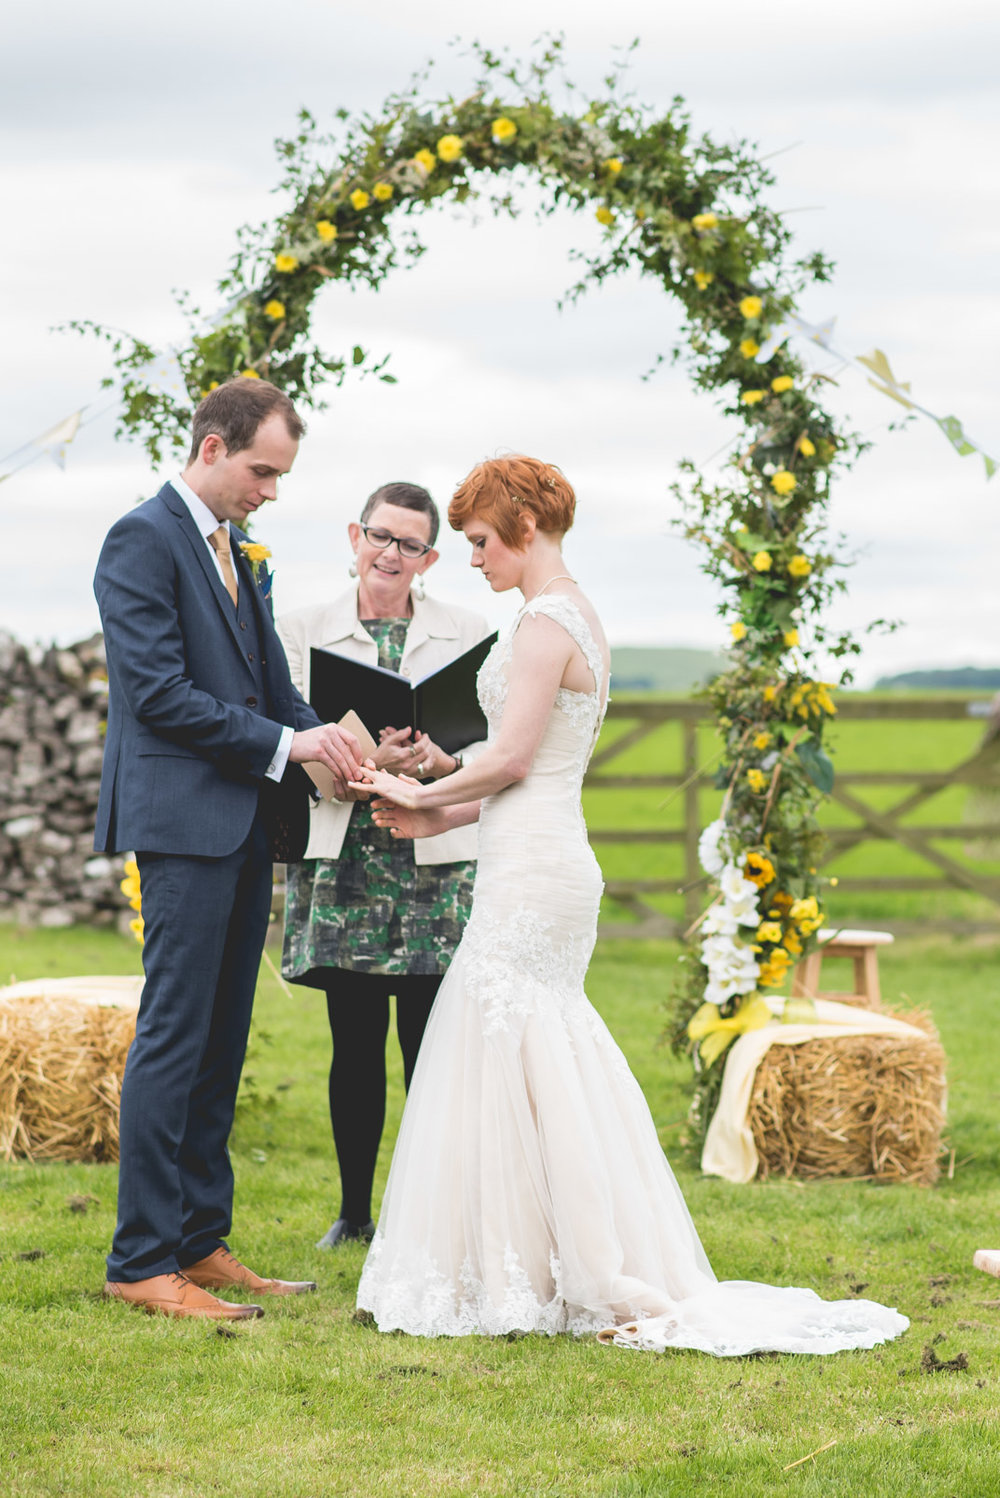 Peak+district+farm+wedding+lower+damgate+photographer-136.jpg